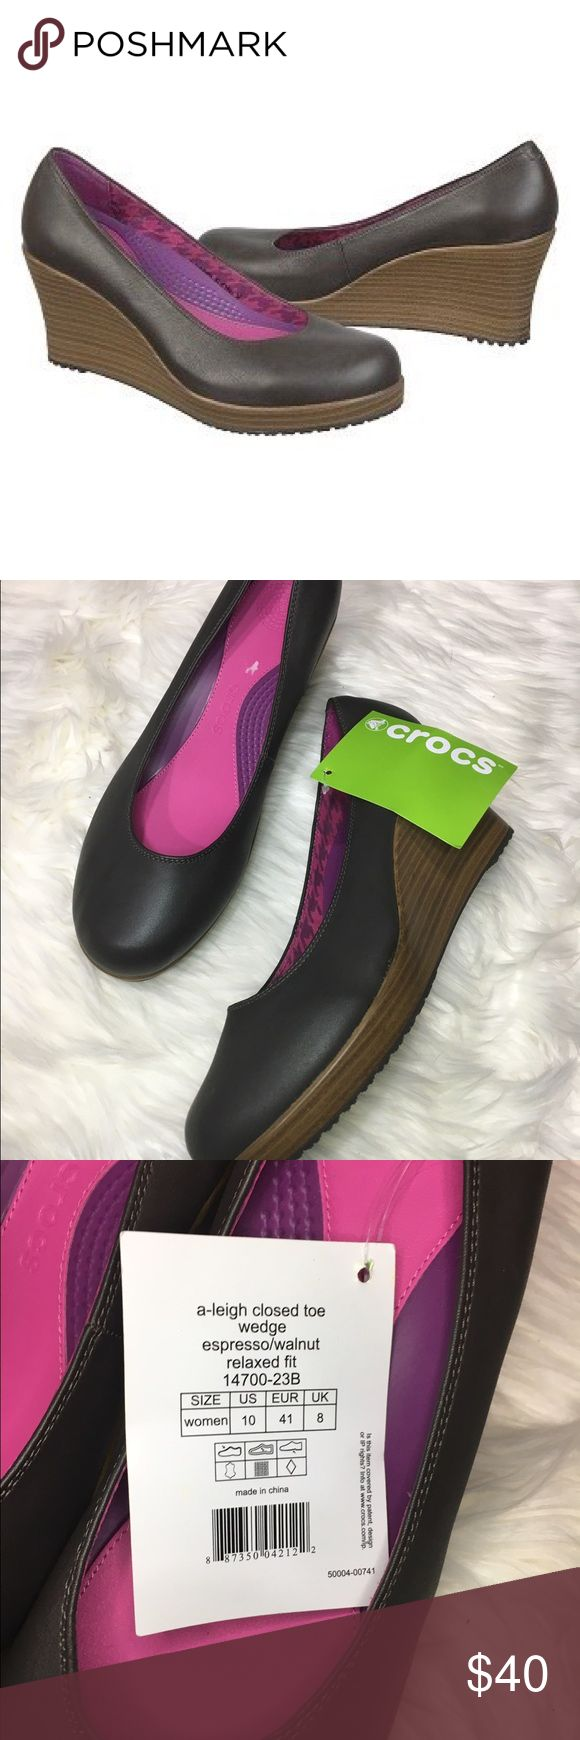 """Crocs Women's A-Leigh Closed Toe Wedge Women's Crocs A-leigh Closed toe wedge relaxed fit. espresso/walnut color. size 10. 3.5"""" wedge. new without box CROCS Shoes Wedges"""